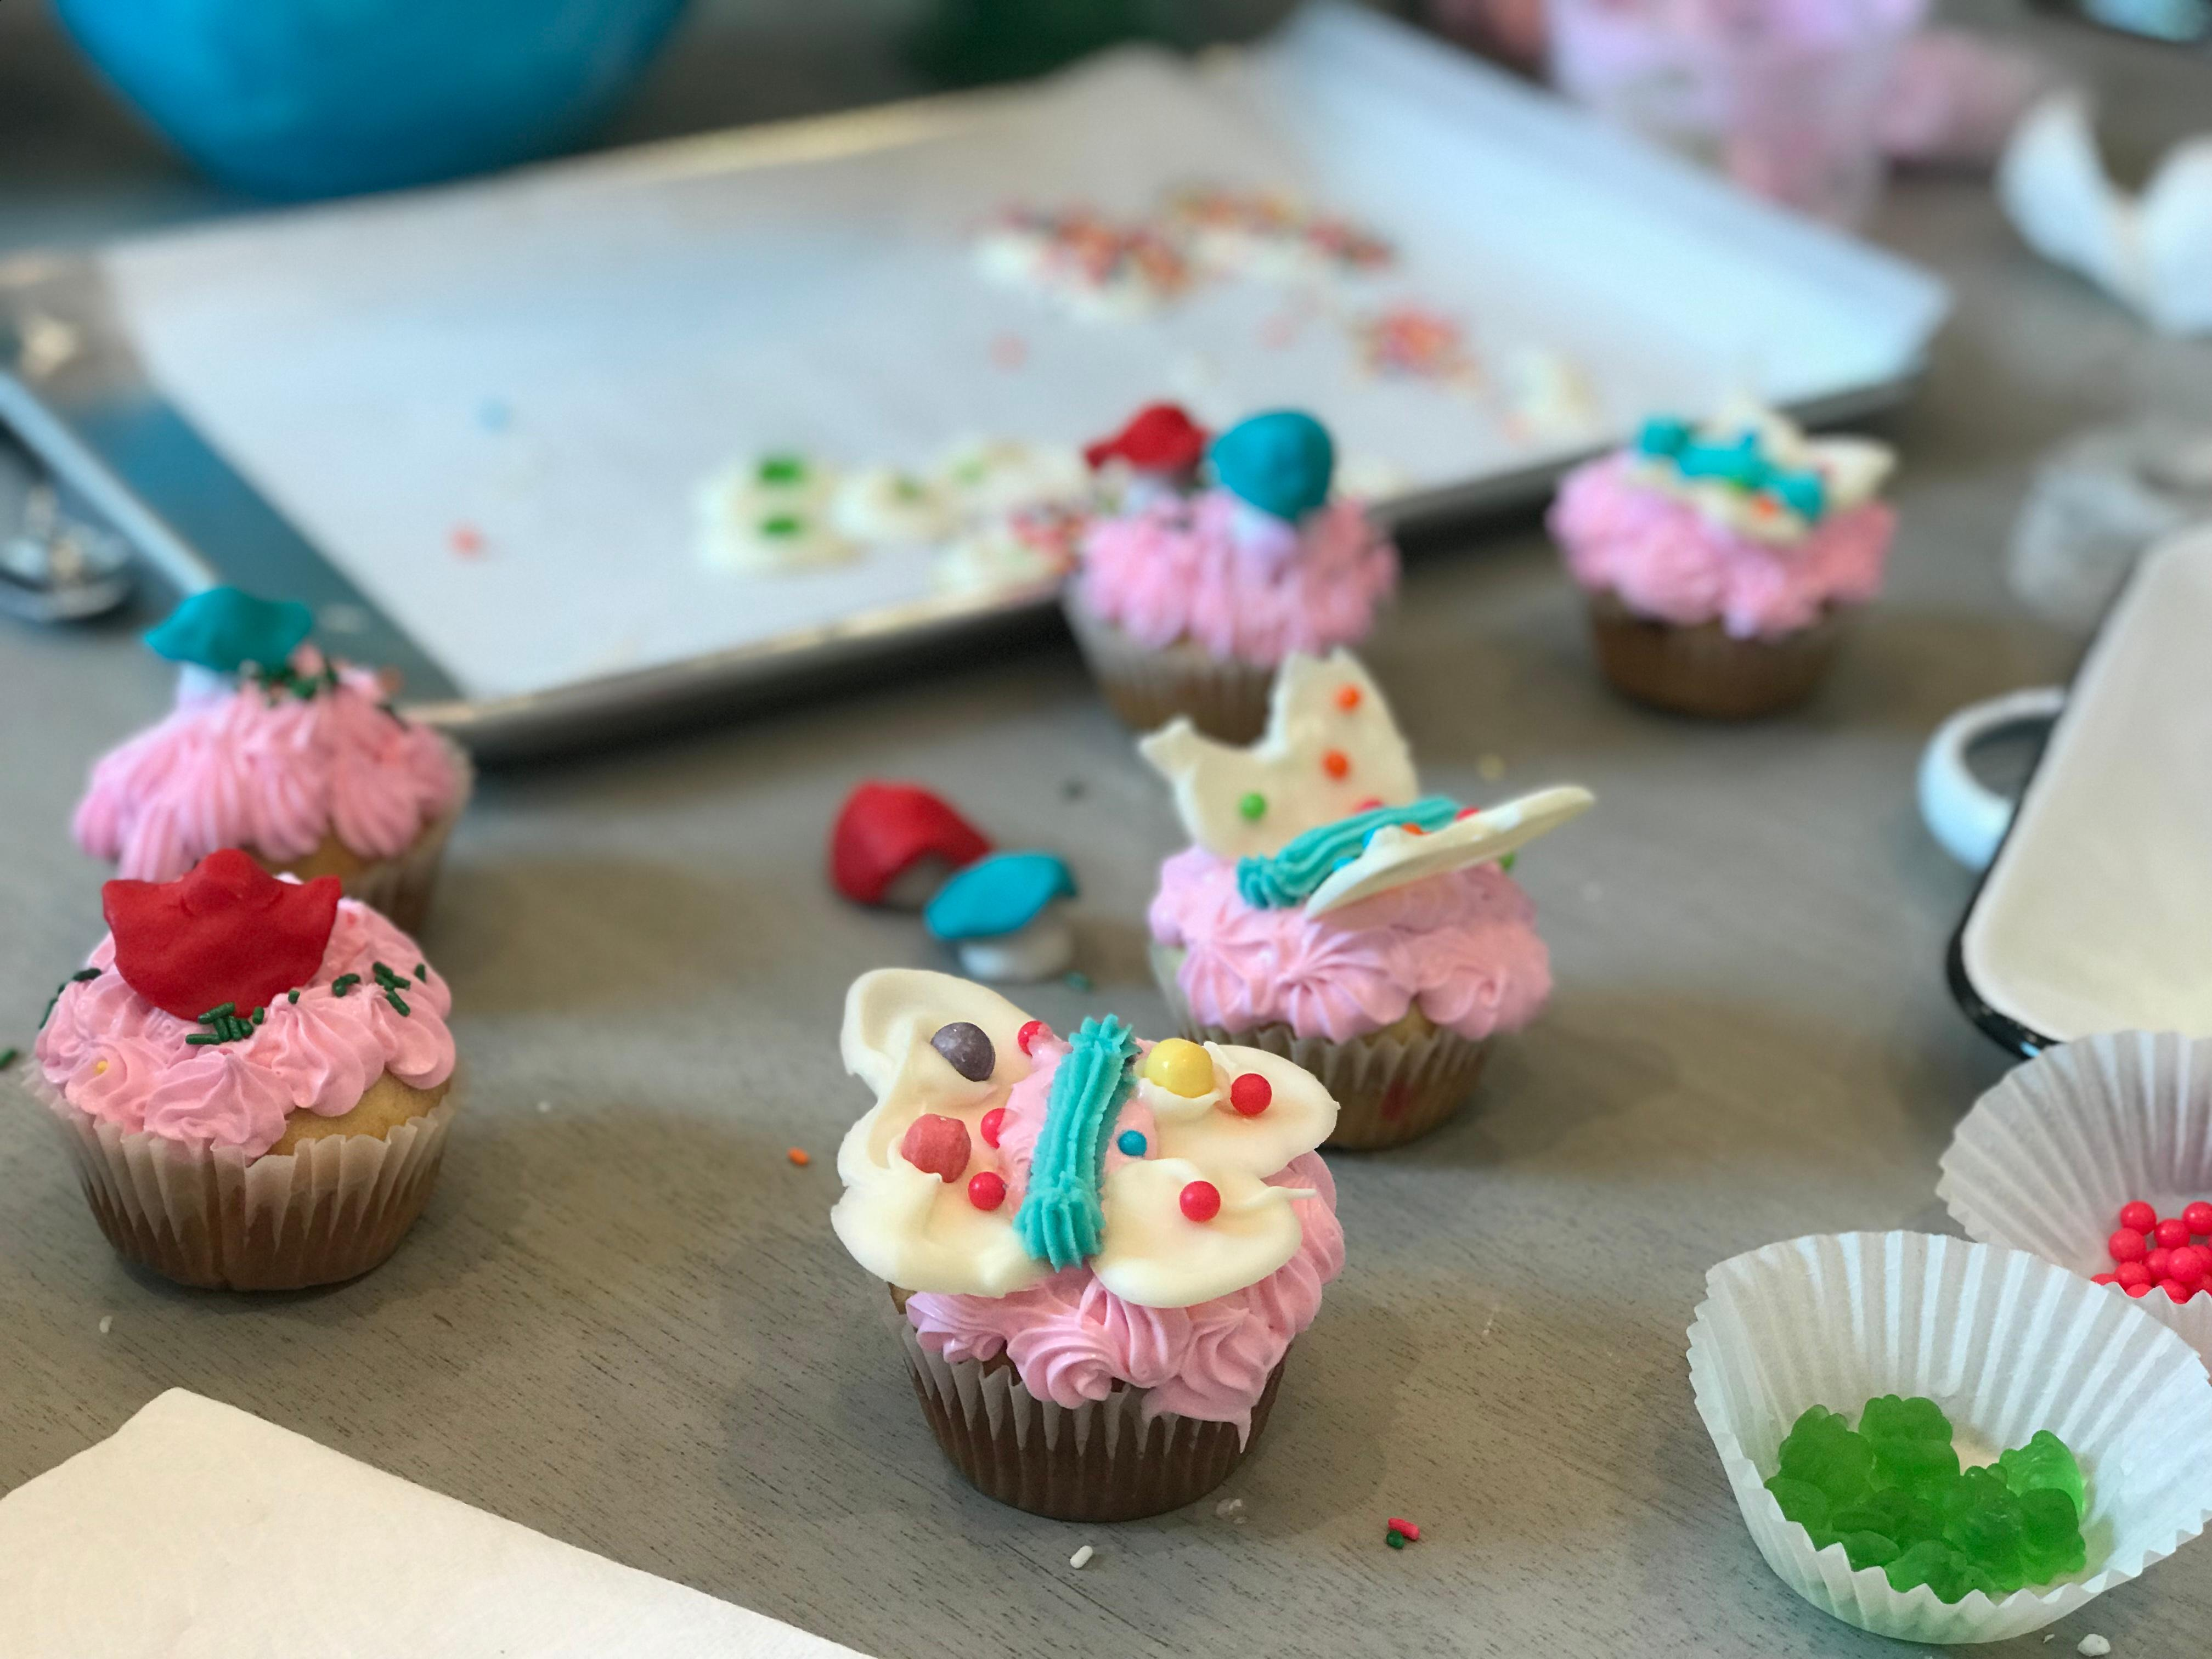 True Life: My Toddler is Better at Baking Than Me. (Image: Kate Neidigh / Seattle Refined){ }